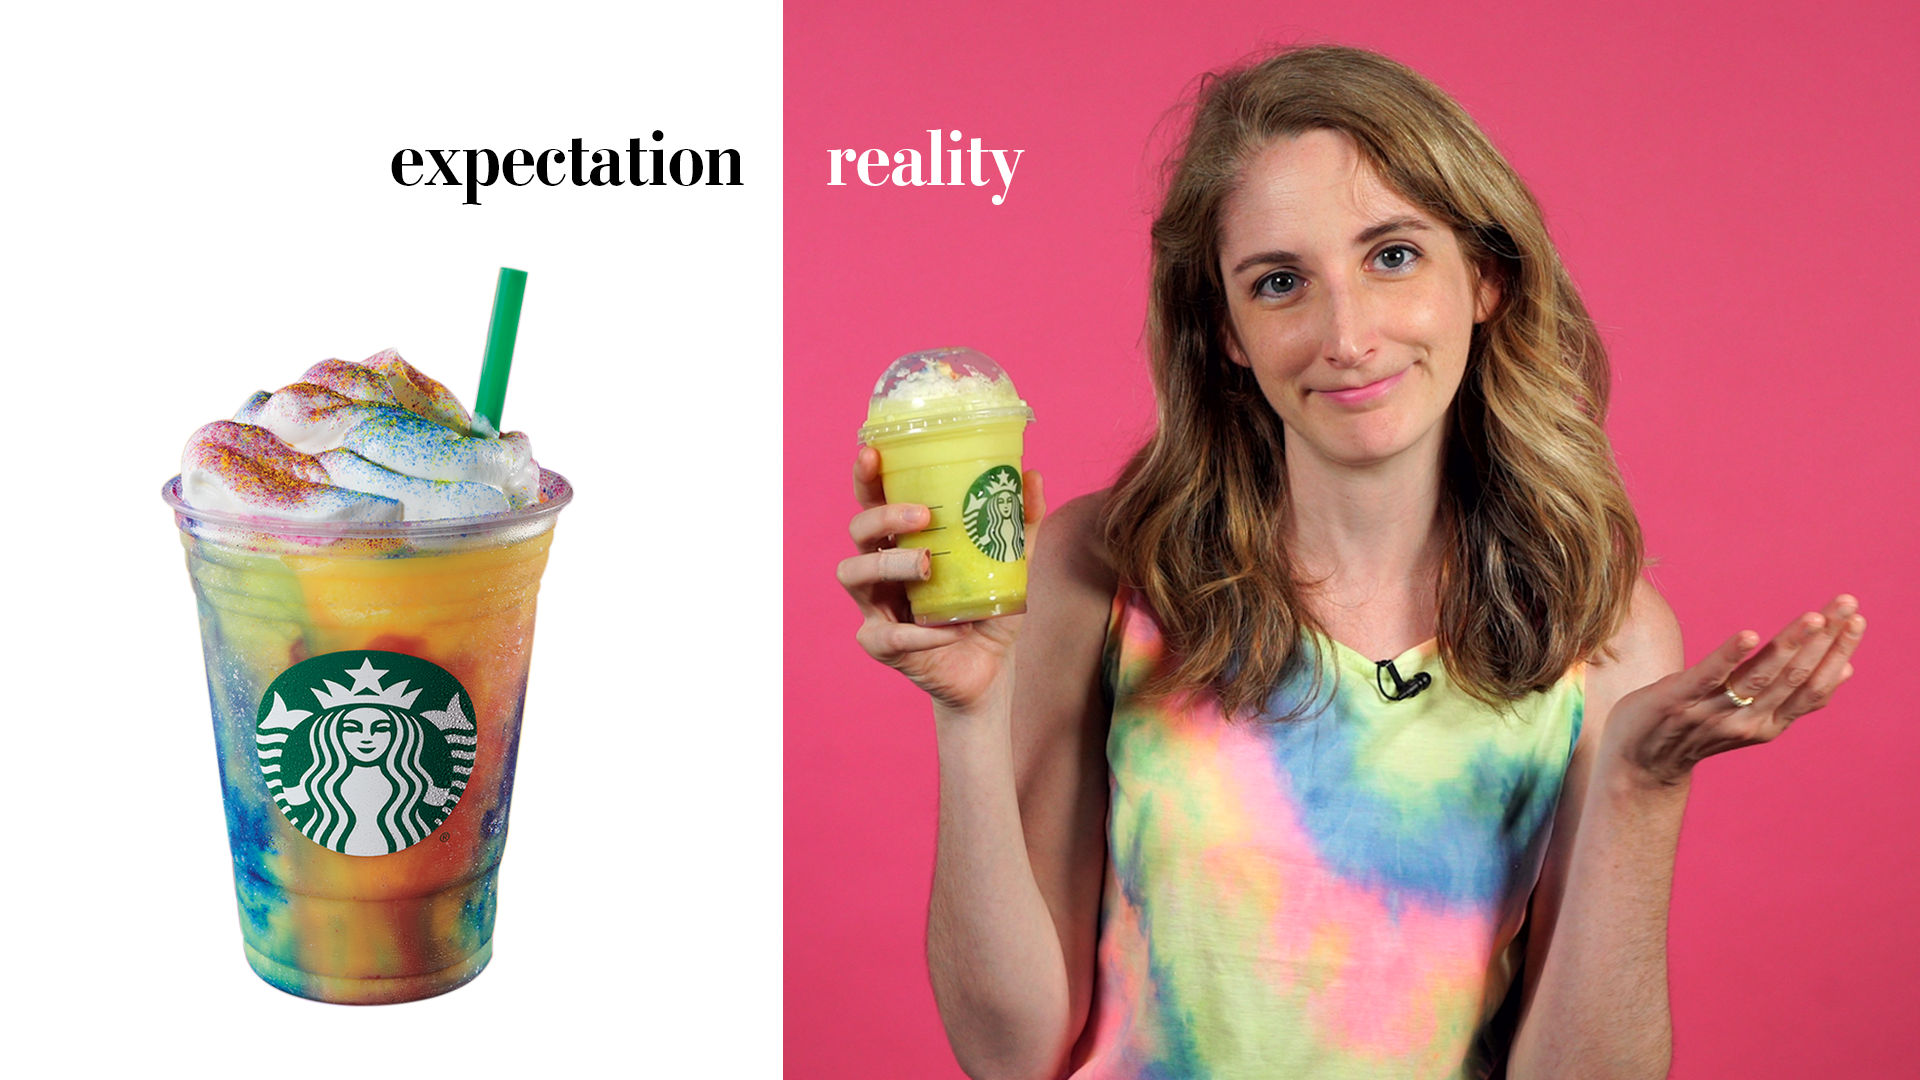 The Starbucks Tie-Dye Frappuccino tastes like Laffy Taffy and disenchantment